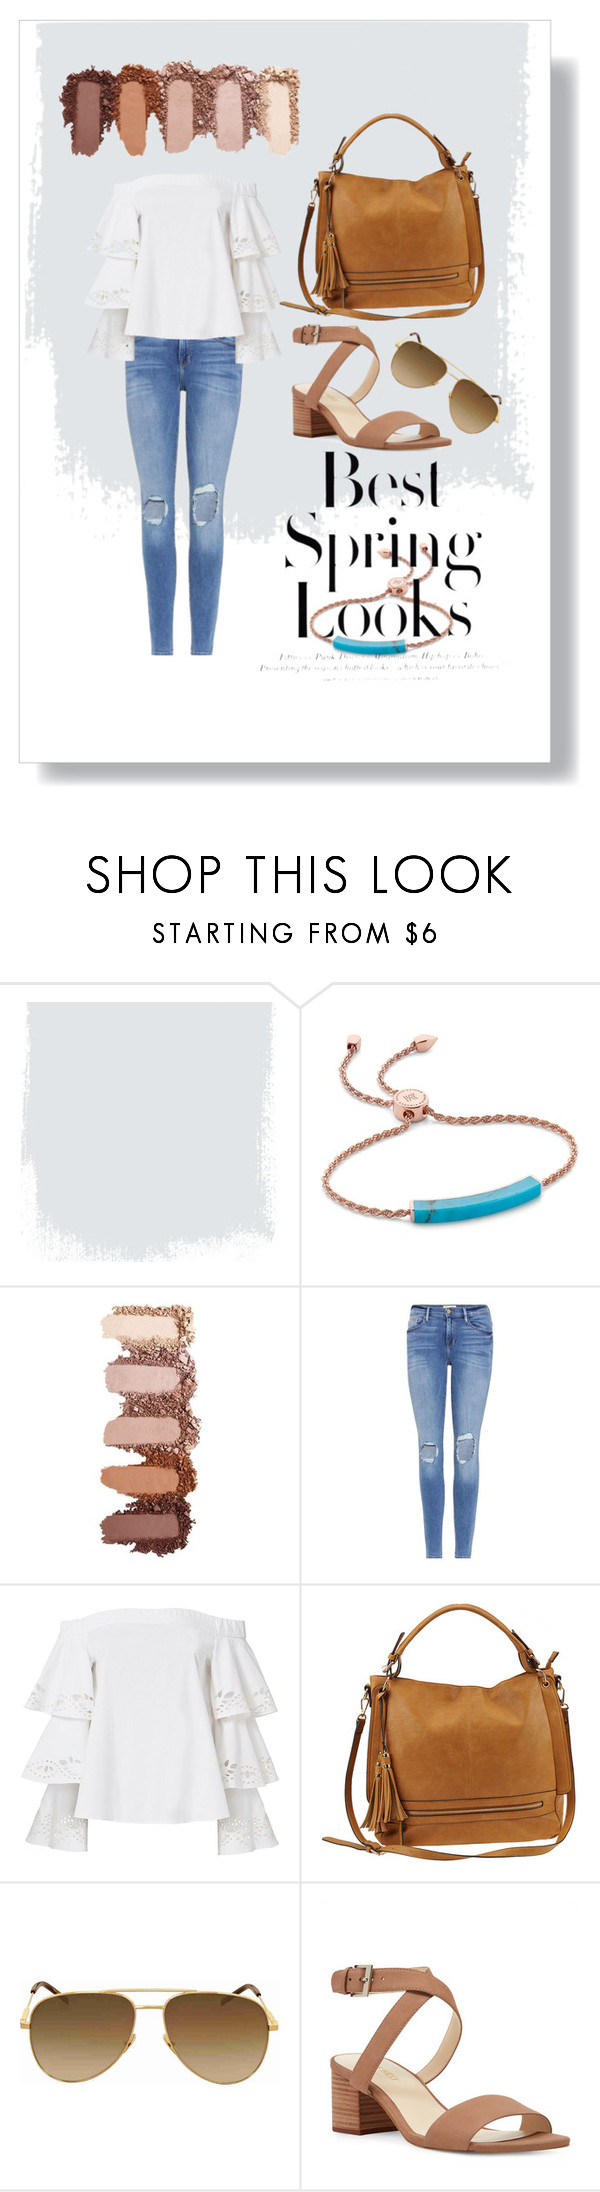 """Spring Look"" by poly-closet ❤ liked on Polyvore featuring Monica Vinader, H&M, Frame, Exclusive for Intermix, Urban Expressions, Yves Saint Laurent, Nine West, Spring, ootd and simpleoutfit"